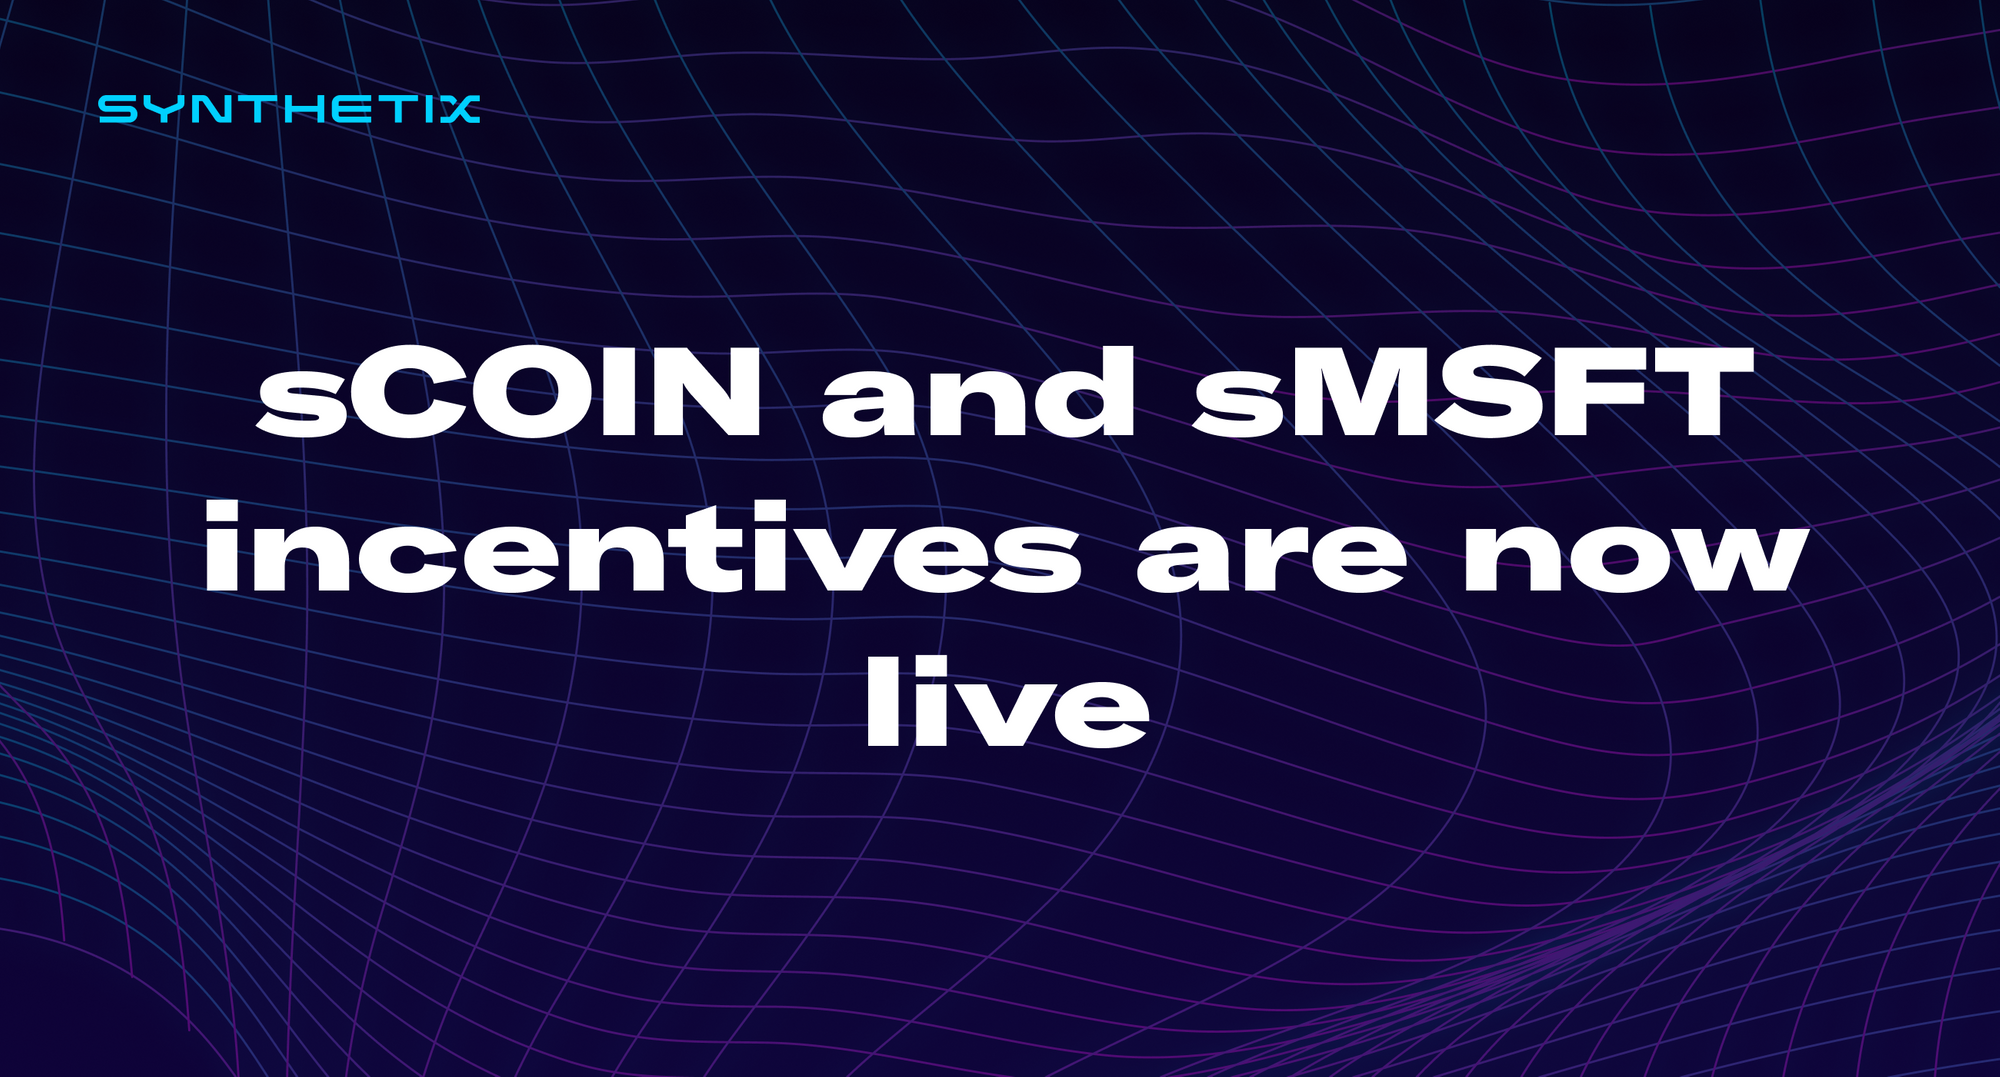 sCOIN & sMSFT pool incentives are now live on Balancer!